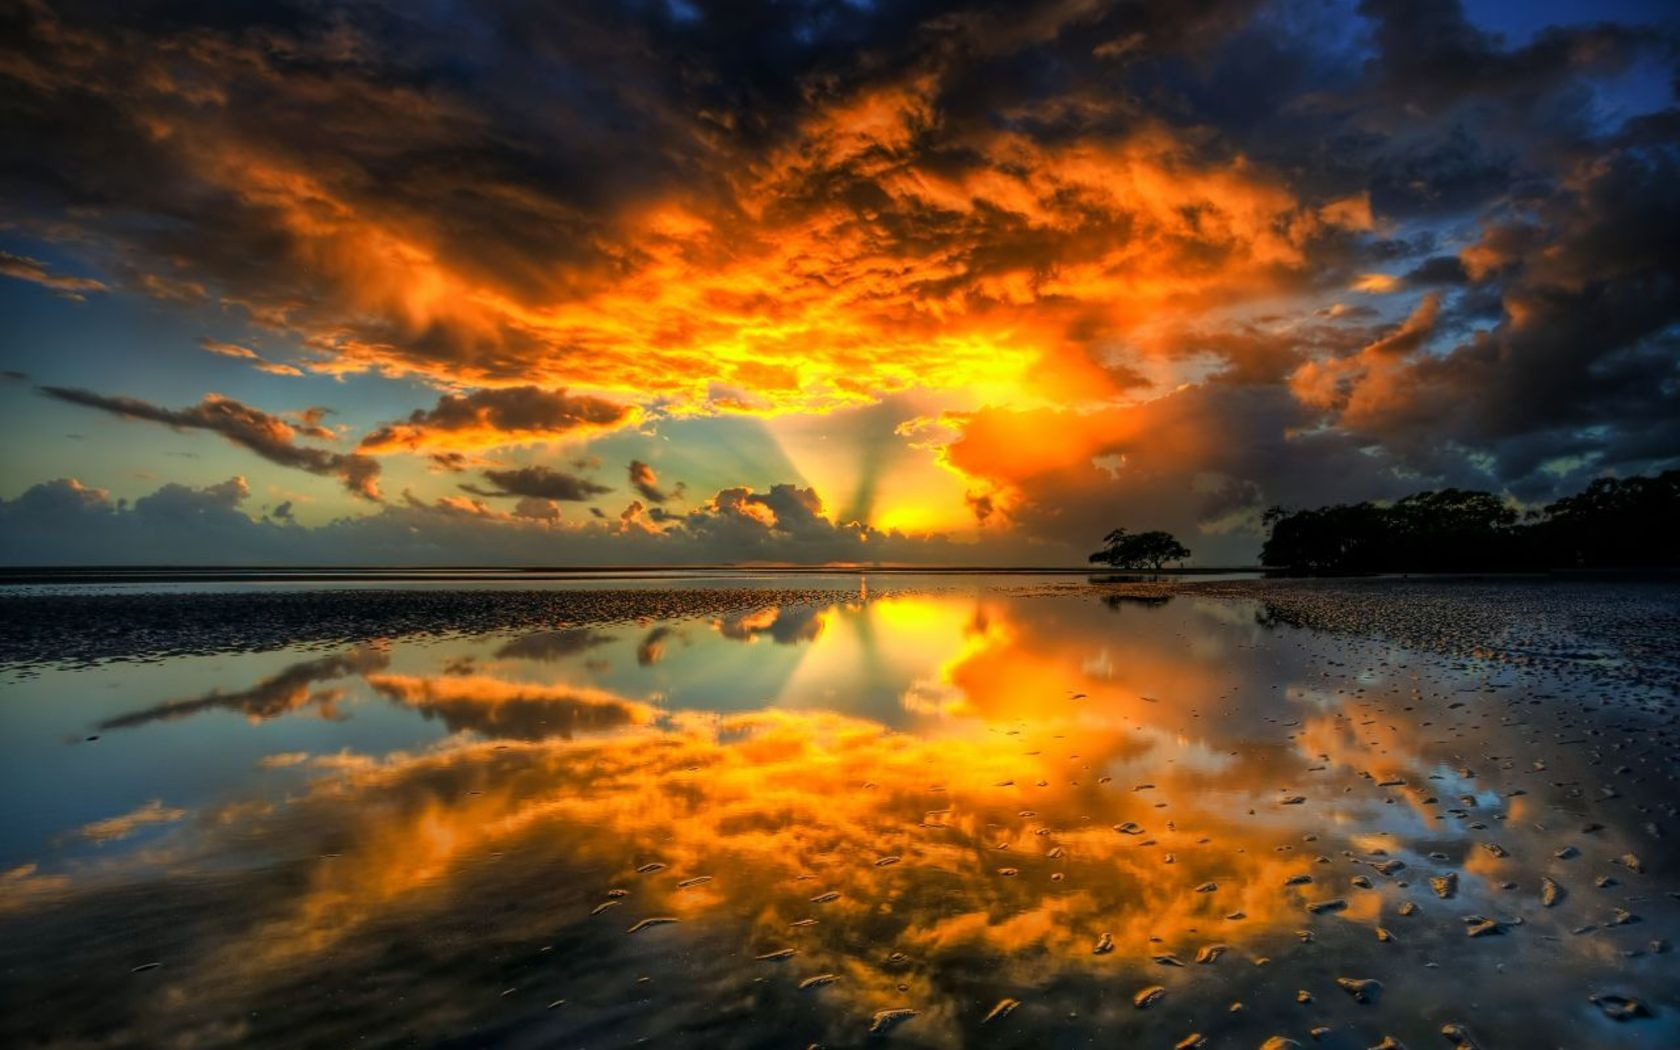 sunset nature shore shockwave HD Wallpaper